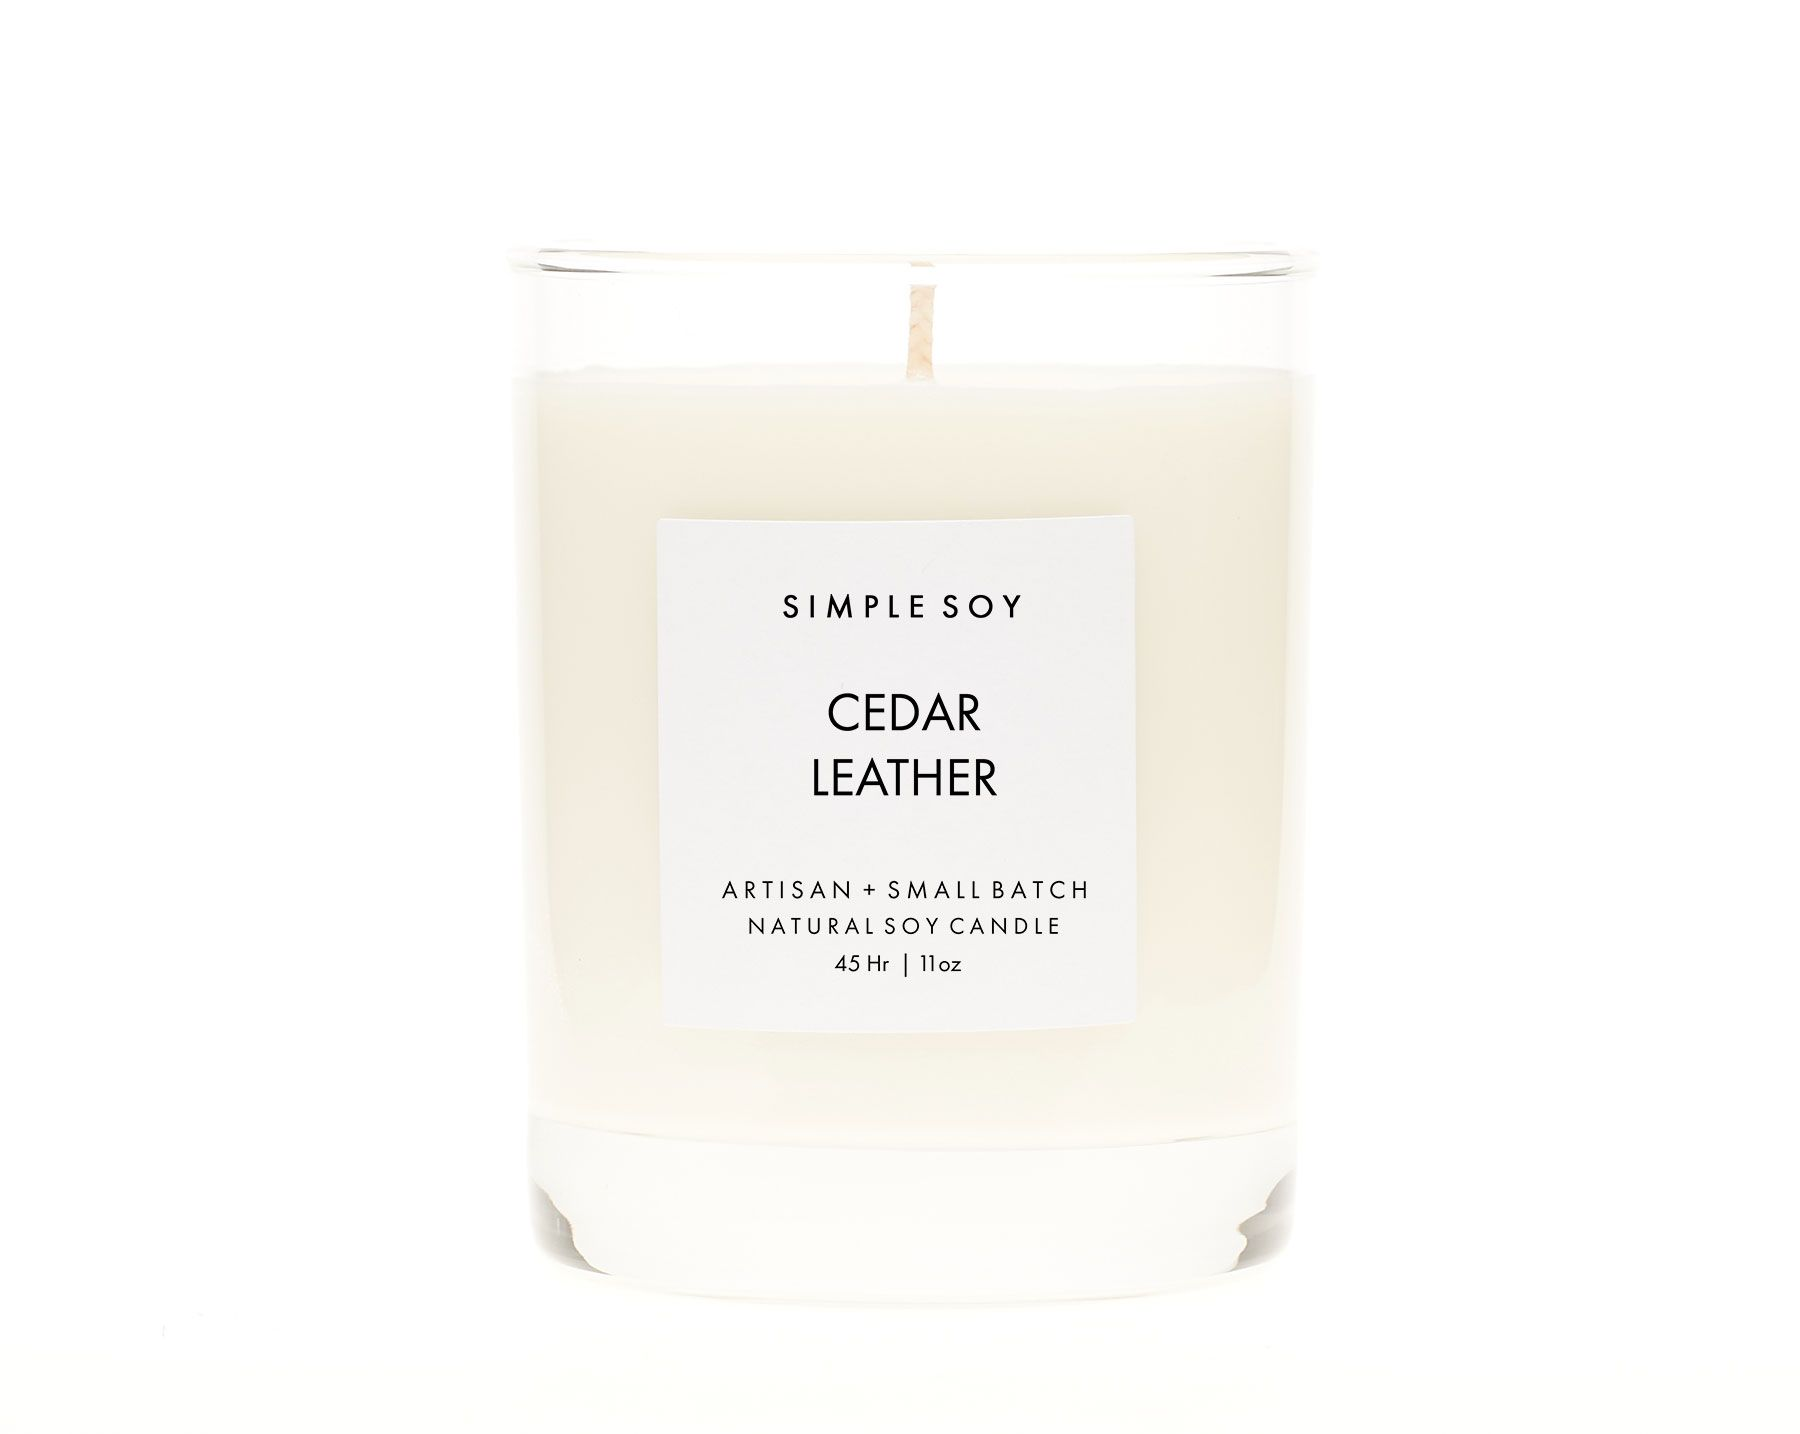 1cf9ec38f64974d3436eed3e43f93b0e - Better Homes And Gardens Sandalwood And Vanilla Candle